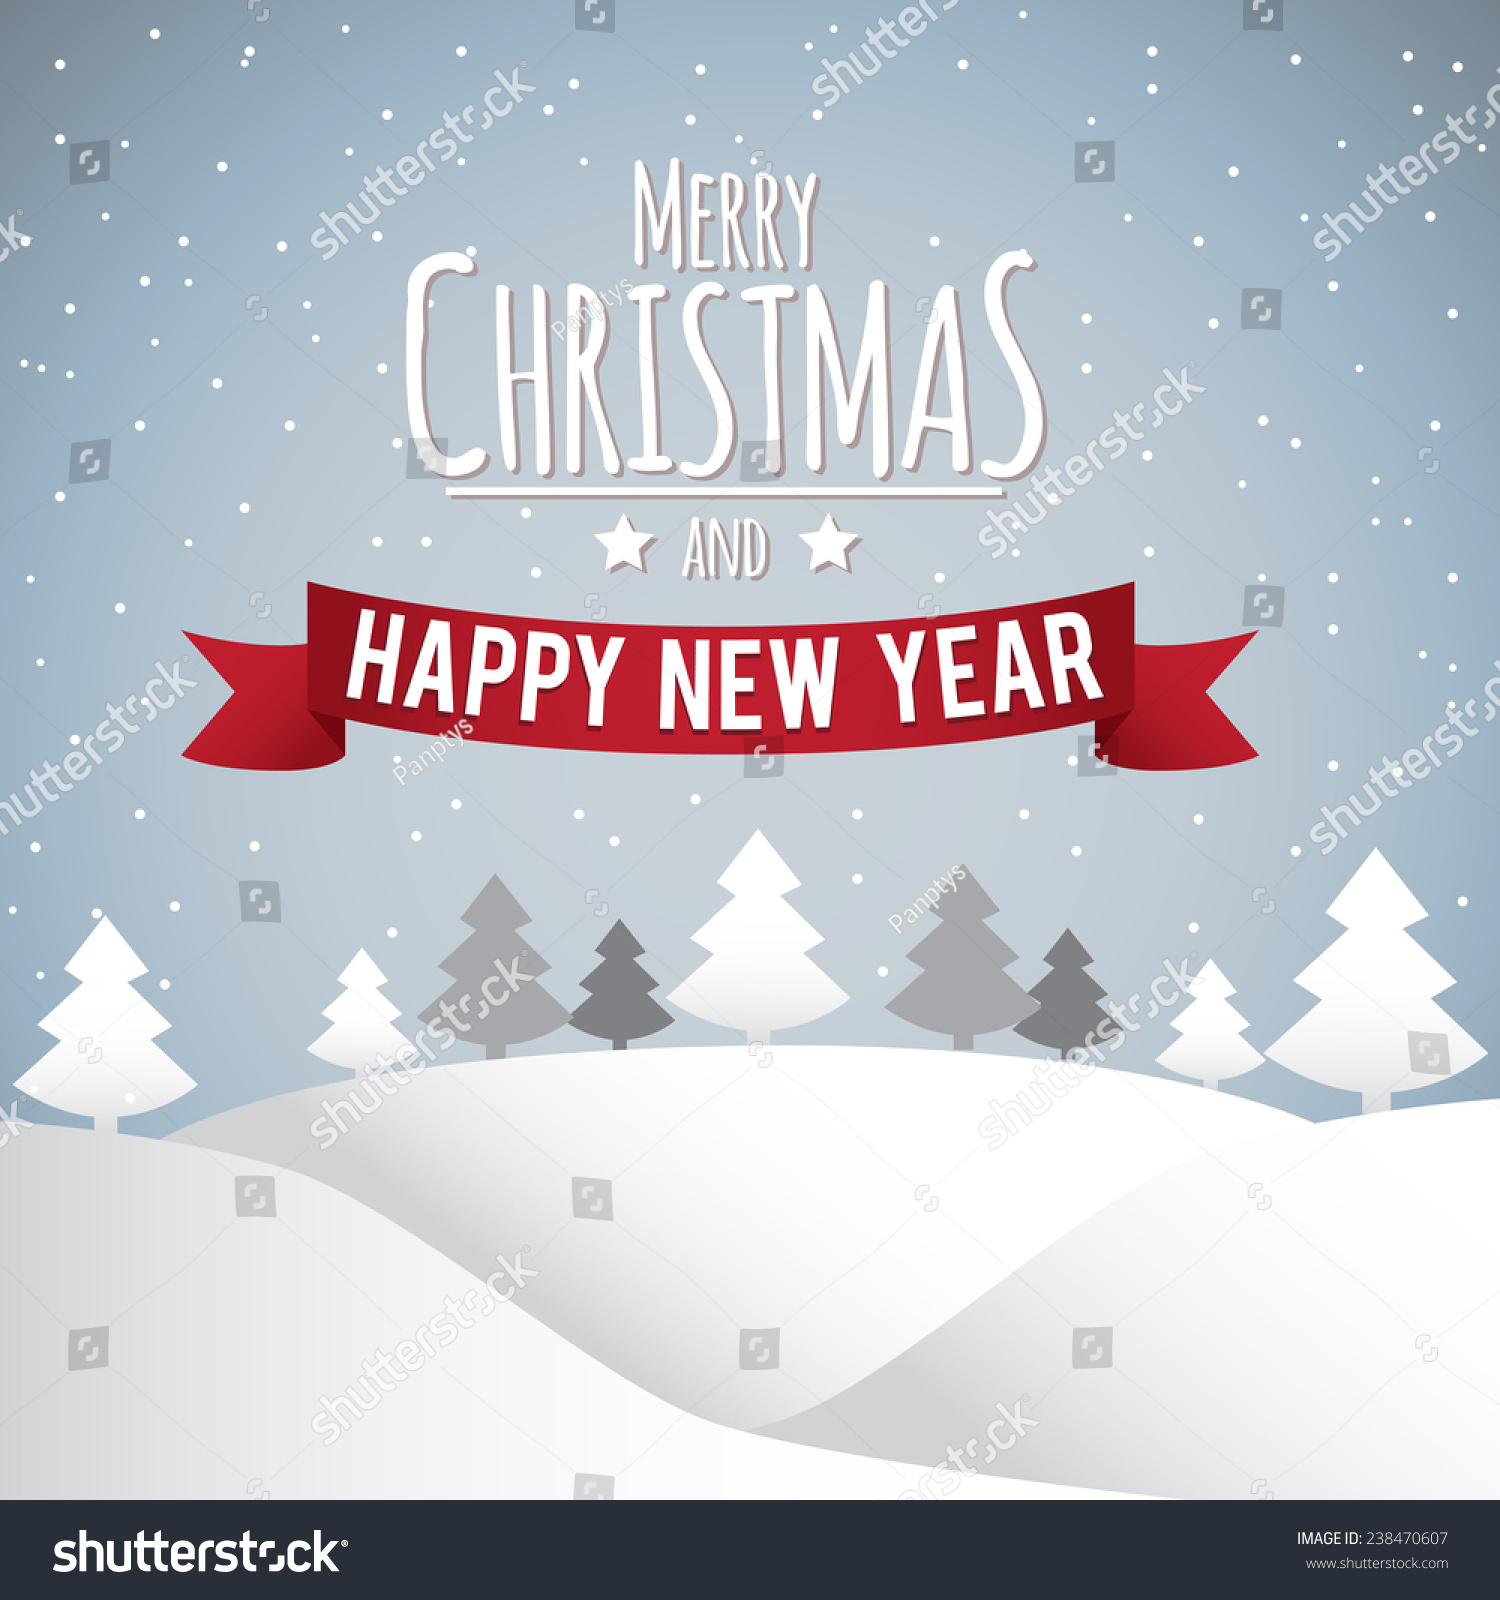 Merry Christmas Happy New Year Poster Stock Illustration 238470607 ...